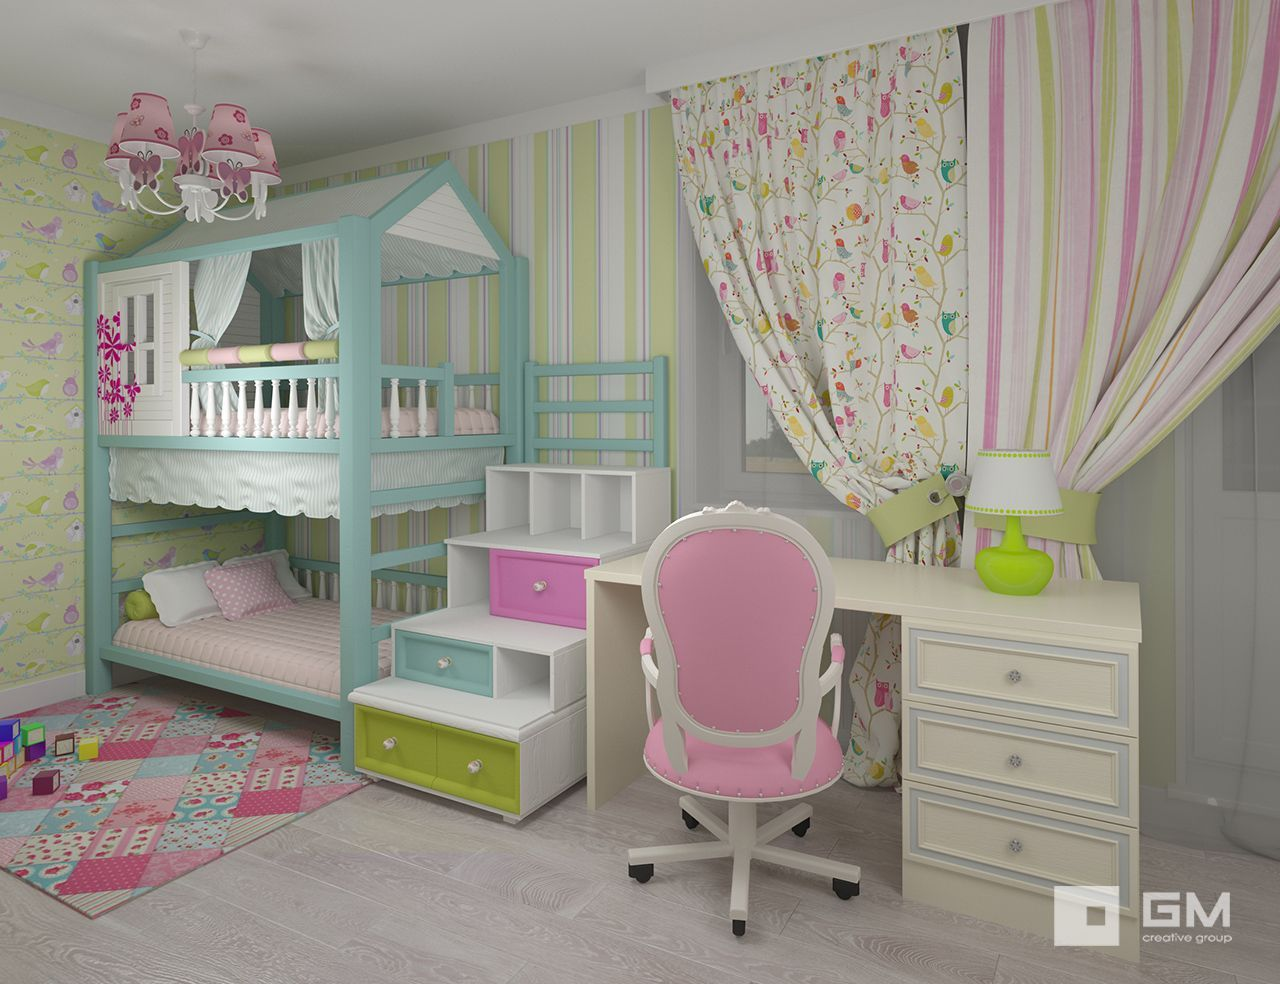 7 Inspiring Kid Room Color Options For Your Little Ones: Chambre Enfant, Chambres